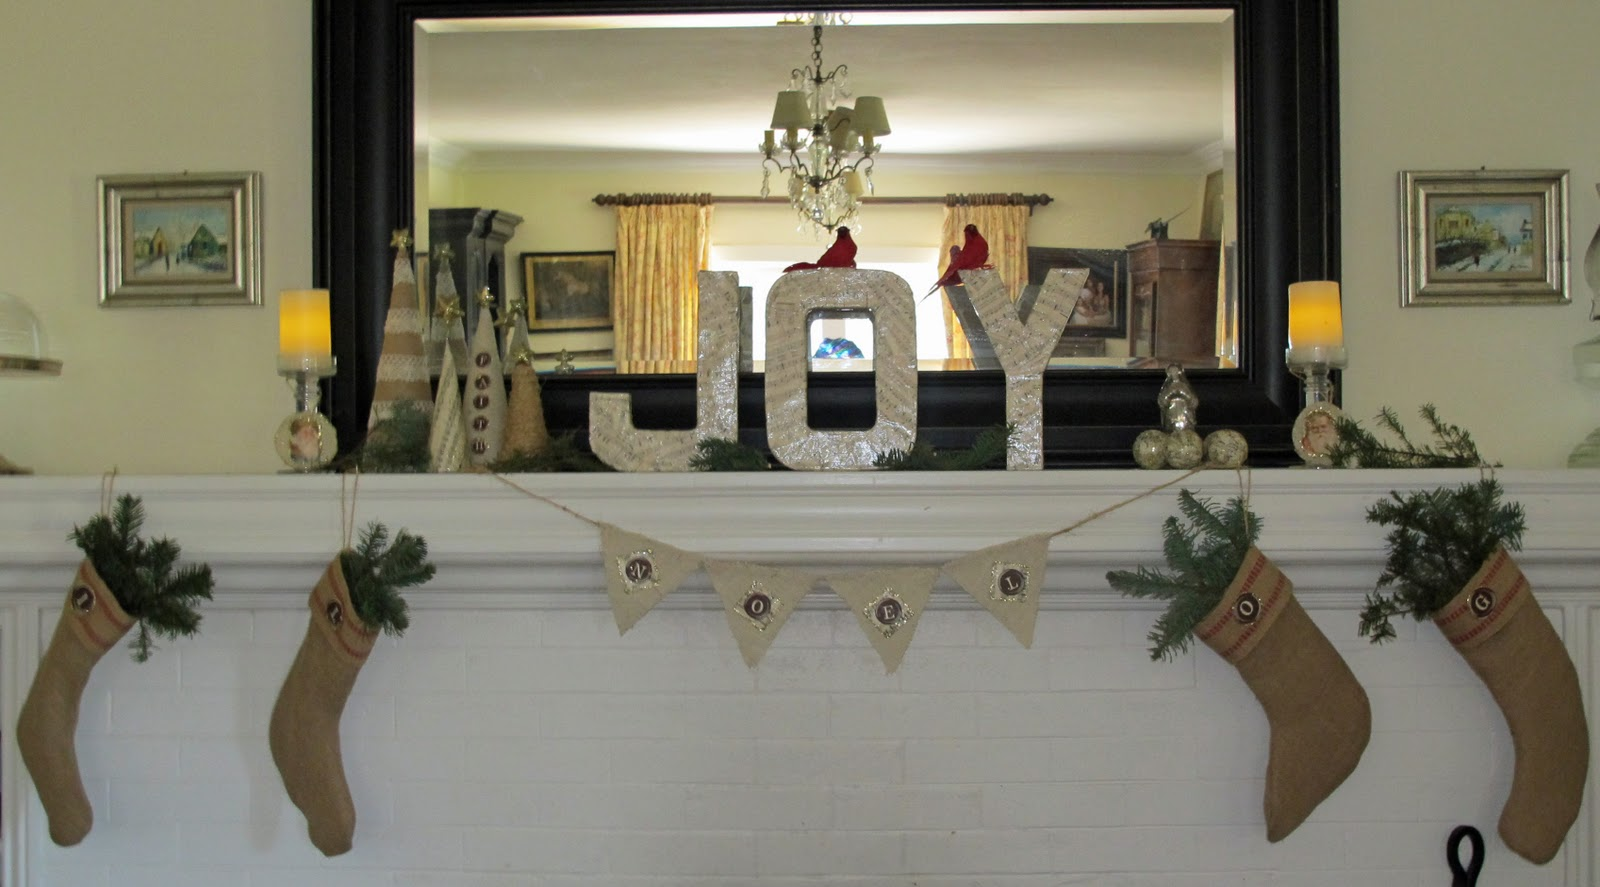 My Mantle Theme This Year Is Burlap Sheet Music And Typewriter Keys Click Here To View Covered Letter Tutorial